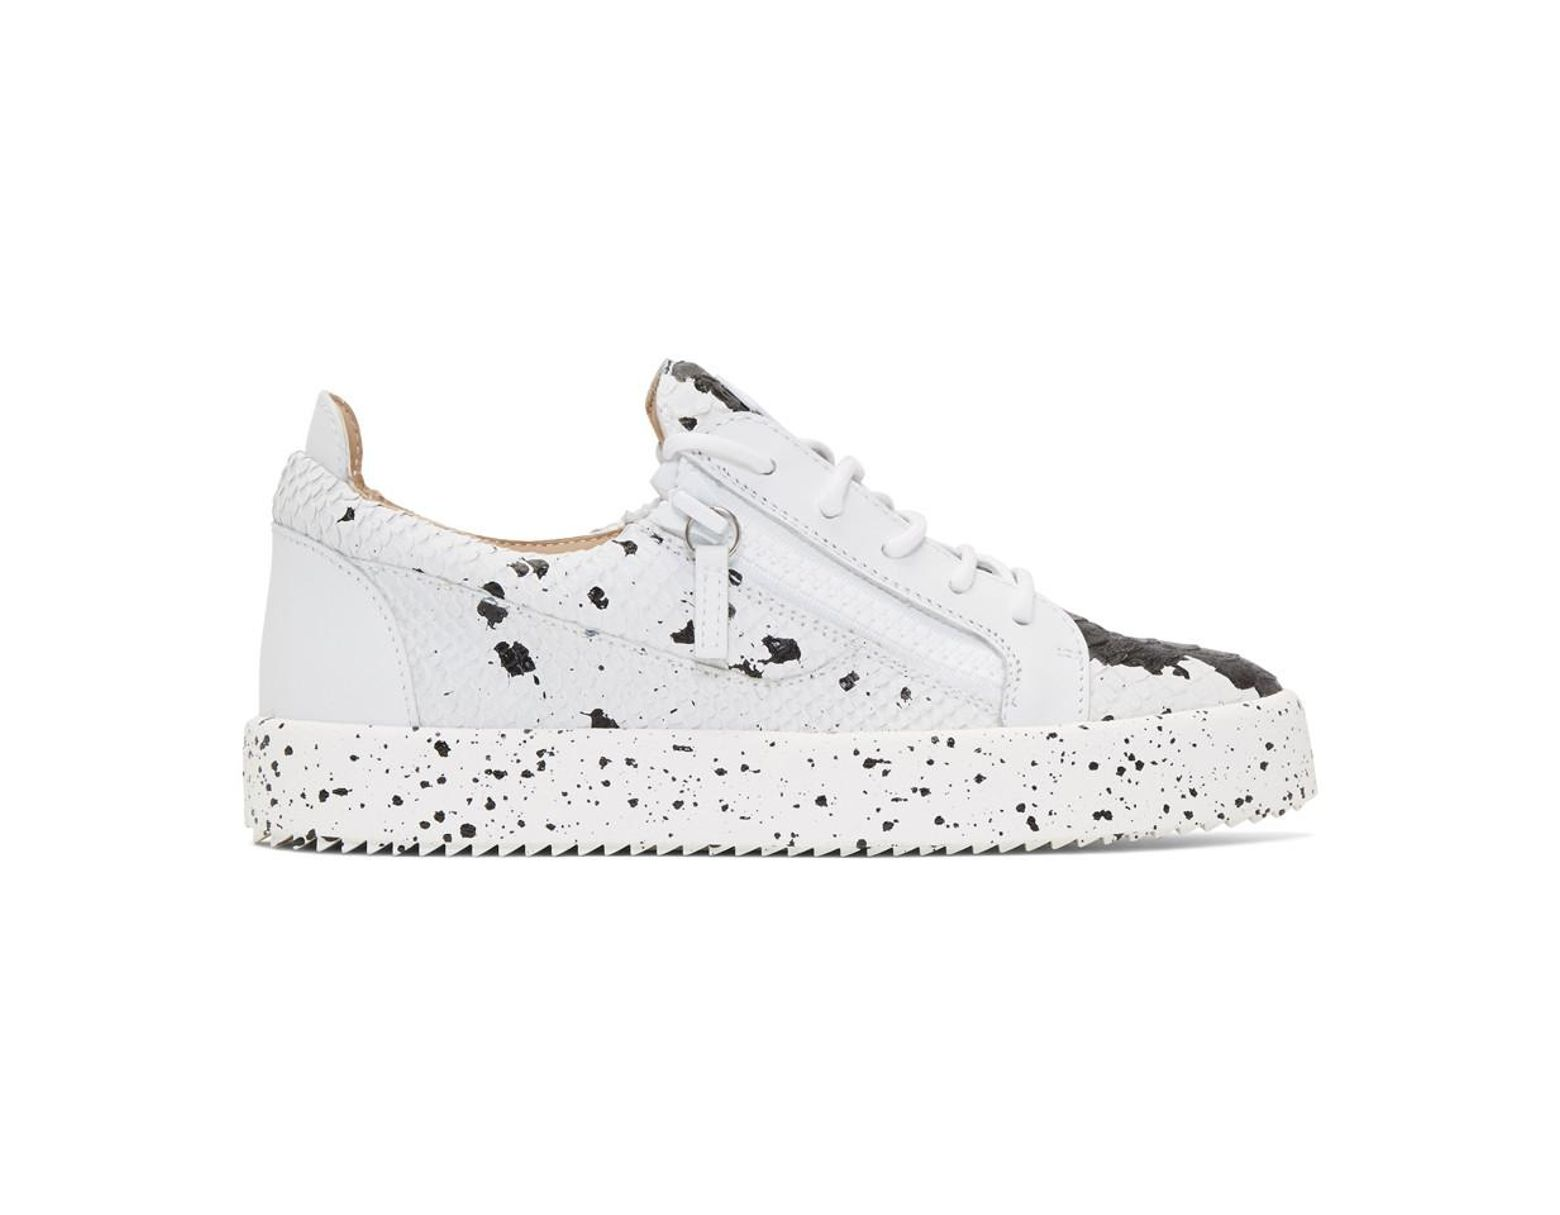 1a5cbf8aaad06 Giuseppe Zanotti White And Black Croc Frankie Sneakers in White for Men -  Save 15% - Lyst